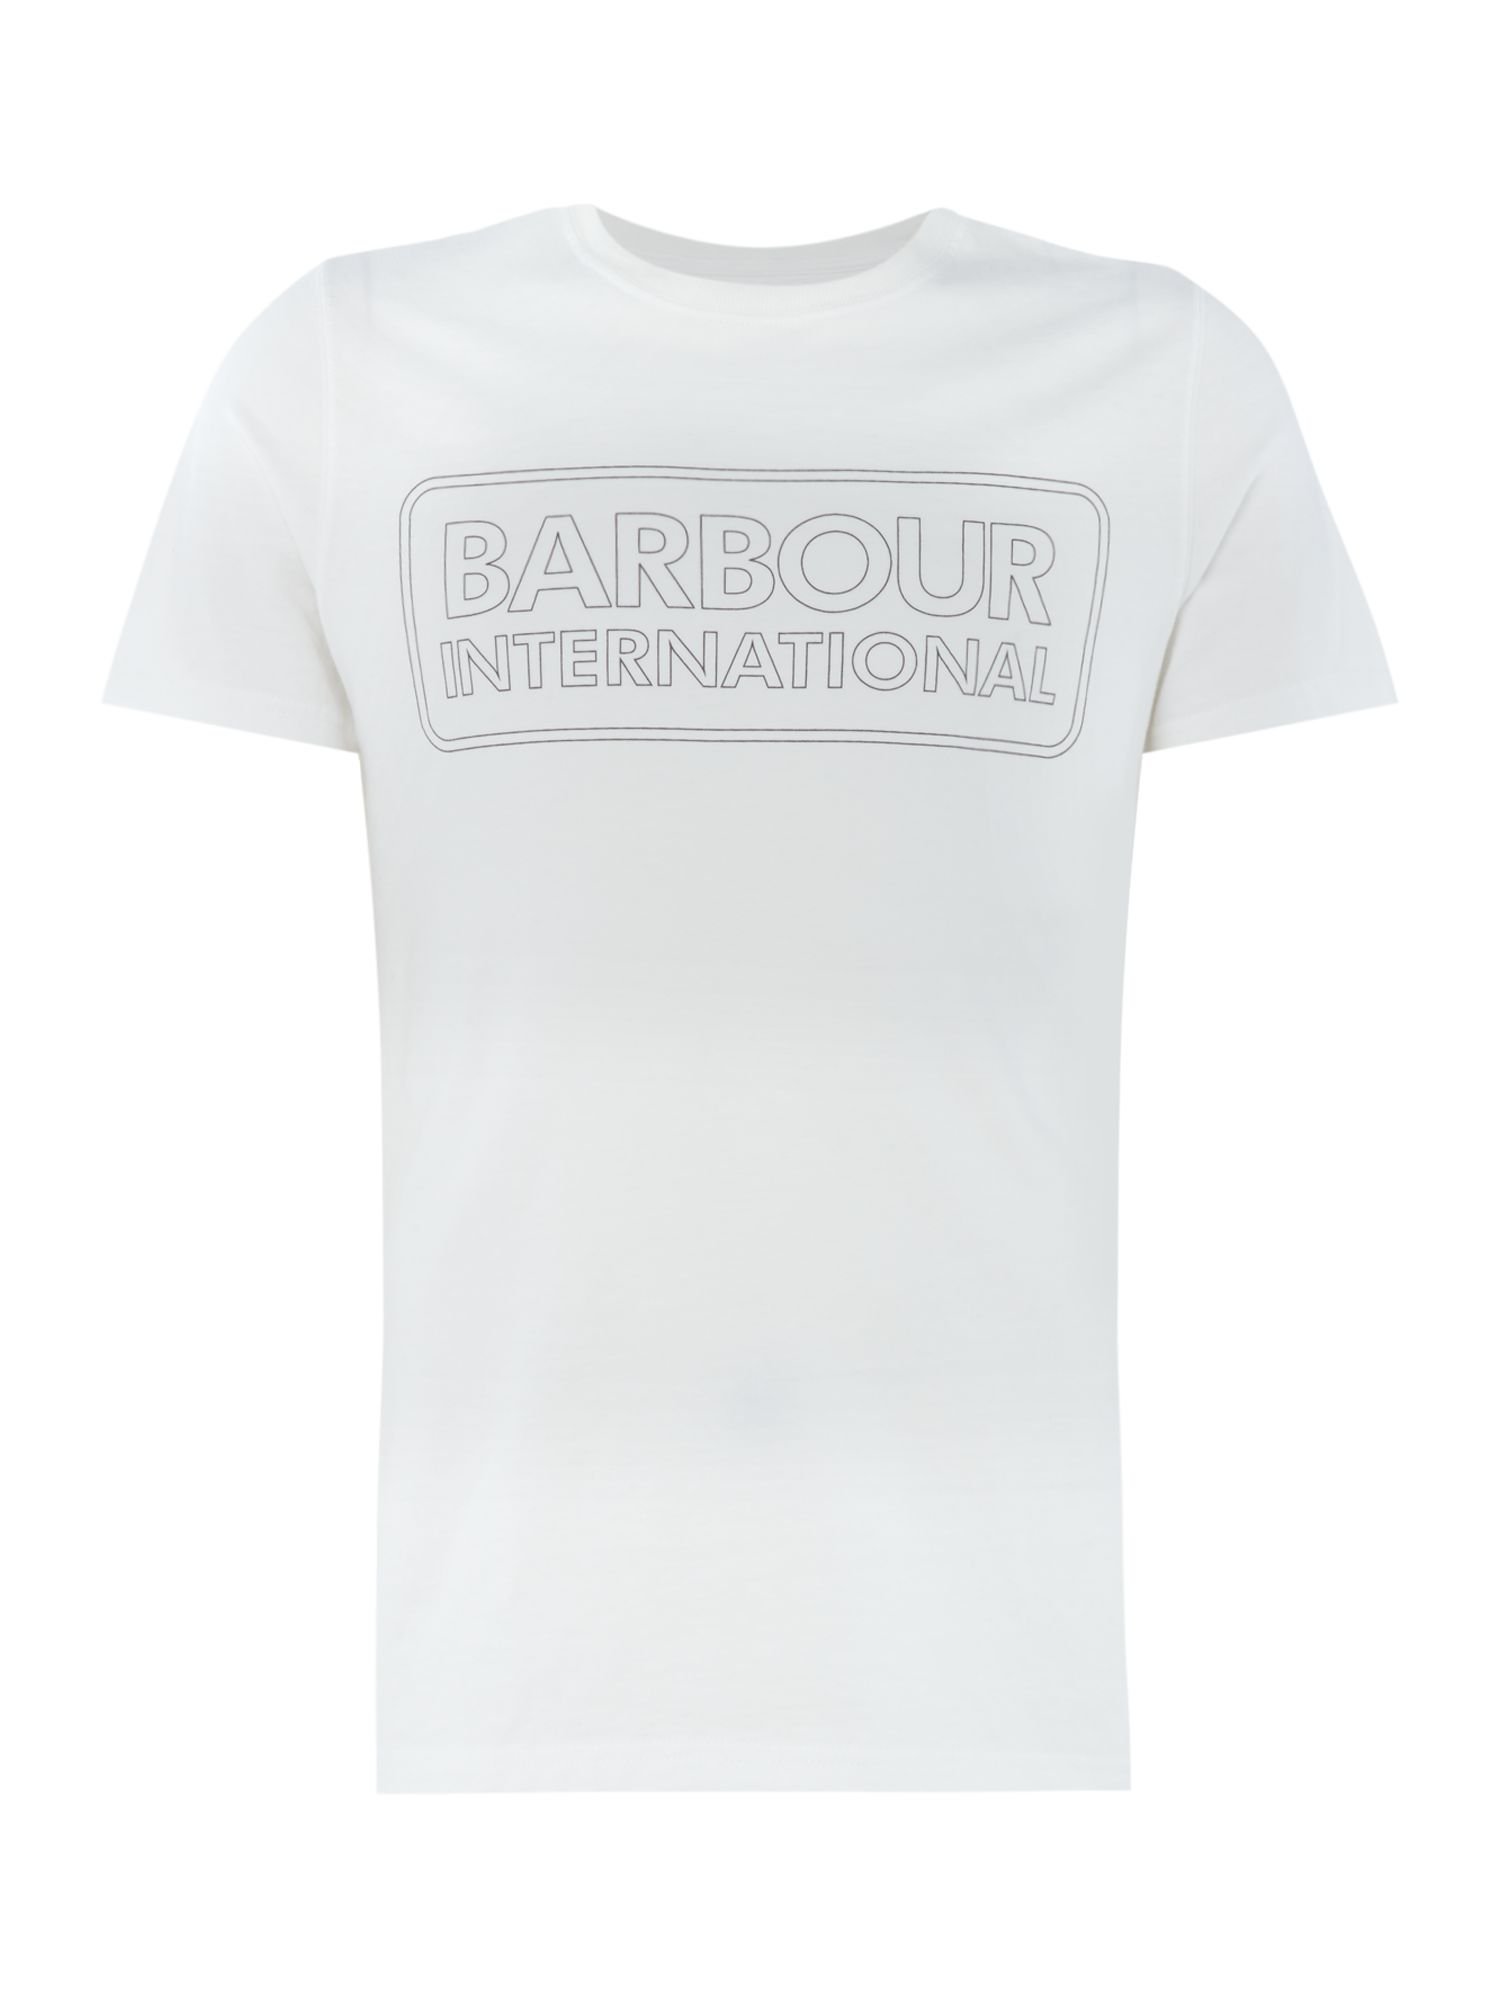 Men's Barbour Duke race short sleeve tshirt, White